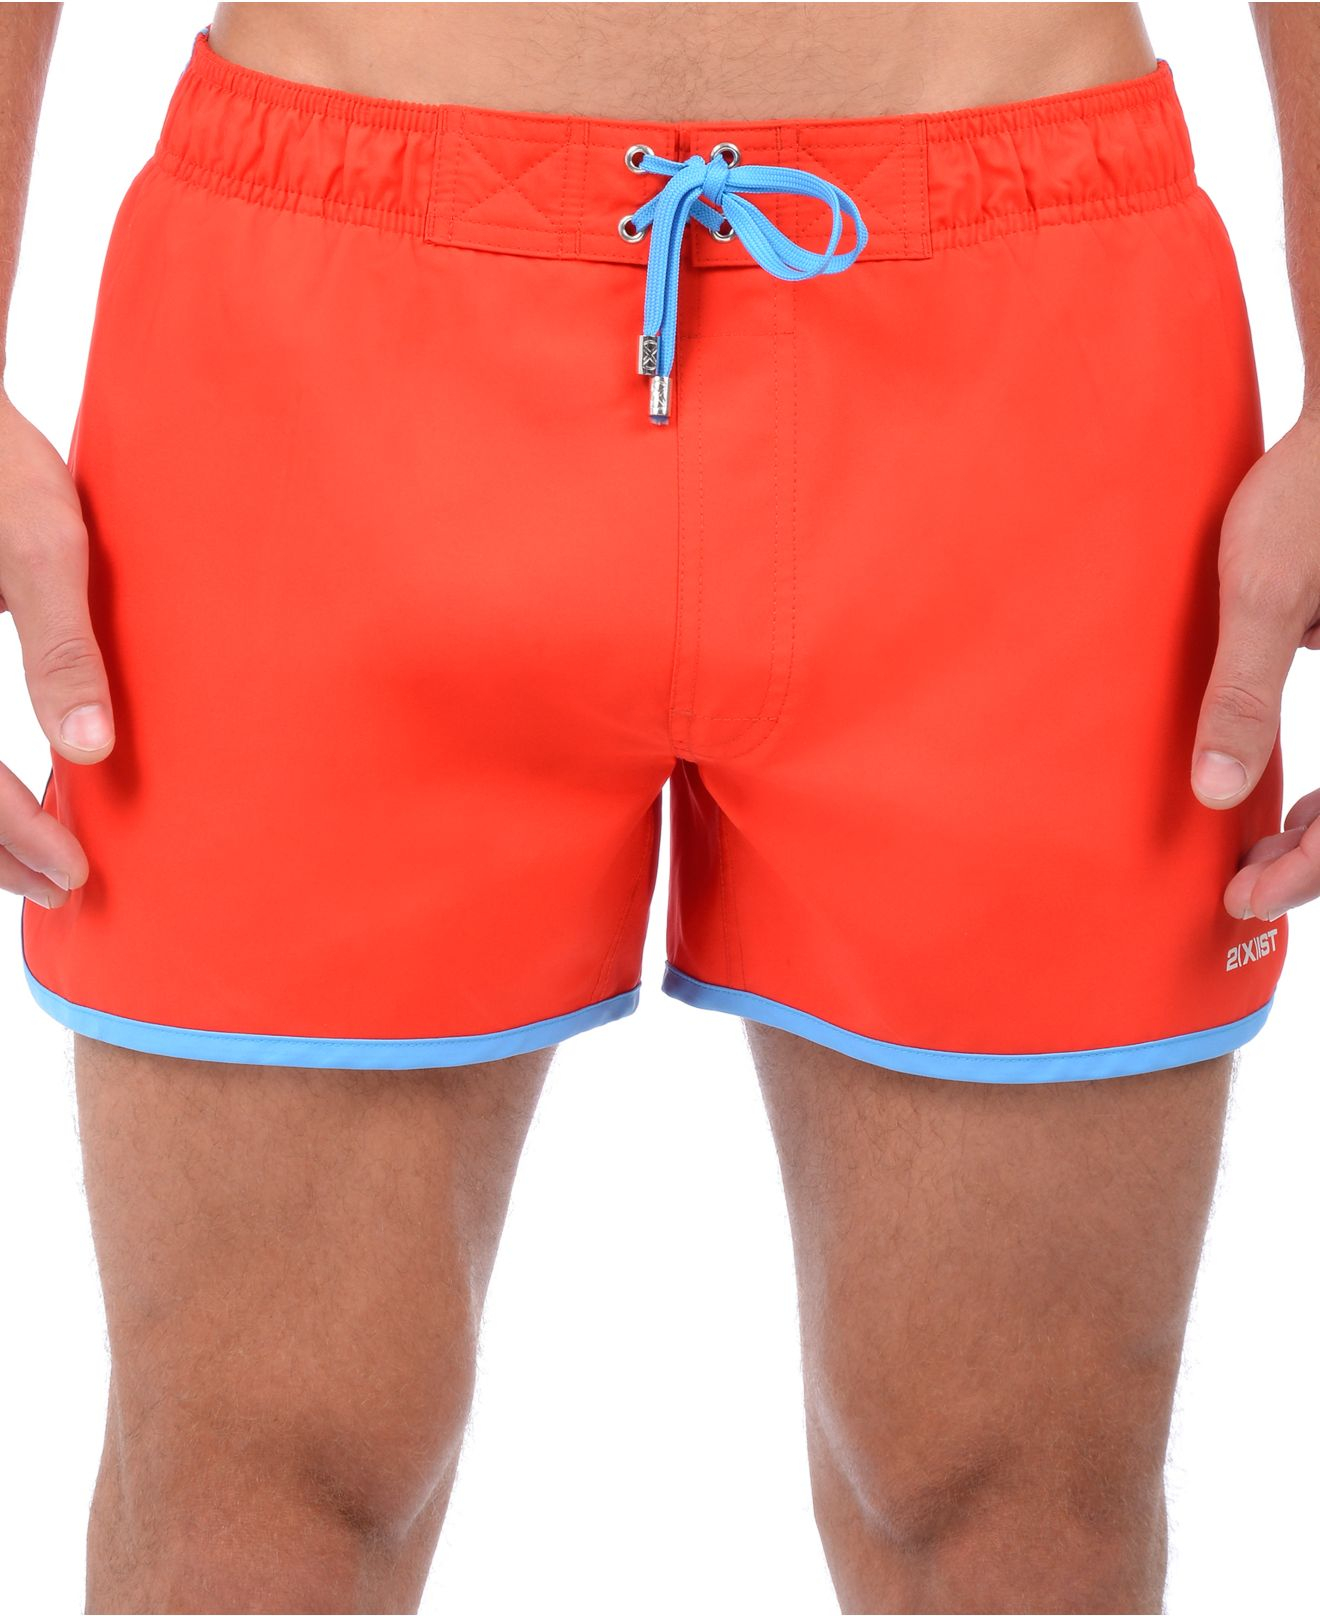 2xist 2 x ist performance quick dry swim trunks in red for men lyst. Black Bedroom Furniture Sets. Home Design Ideas